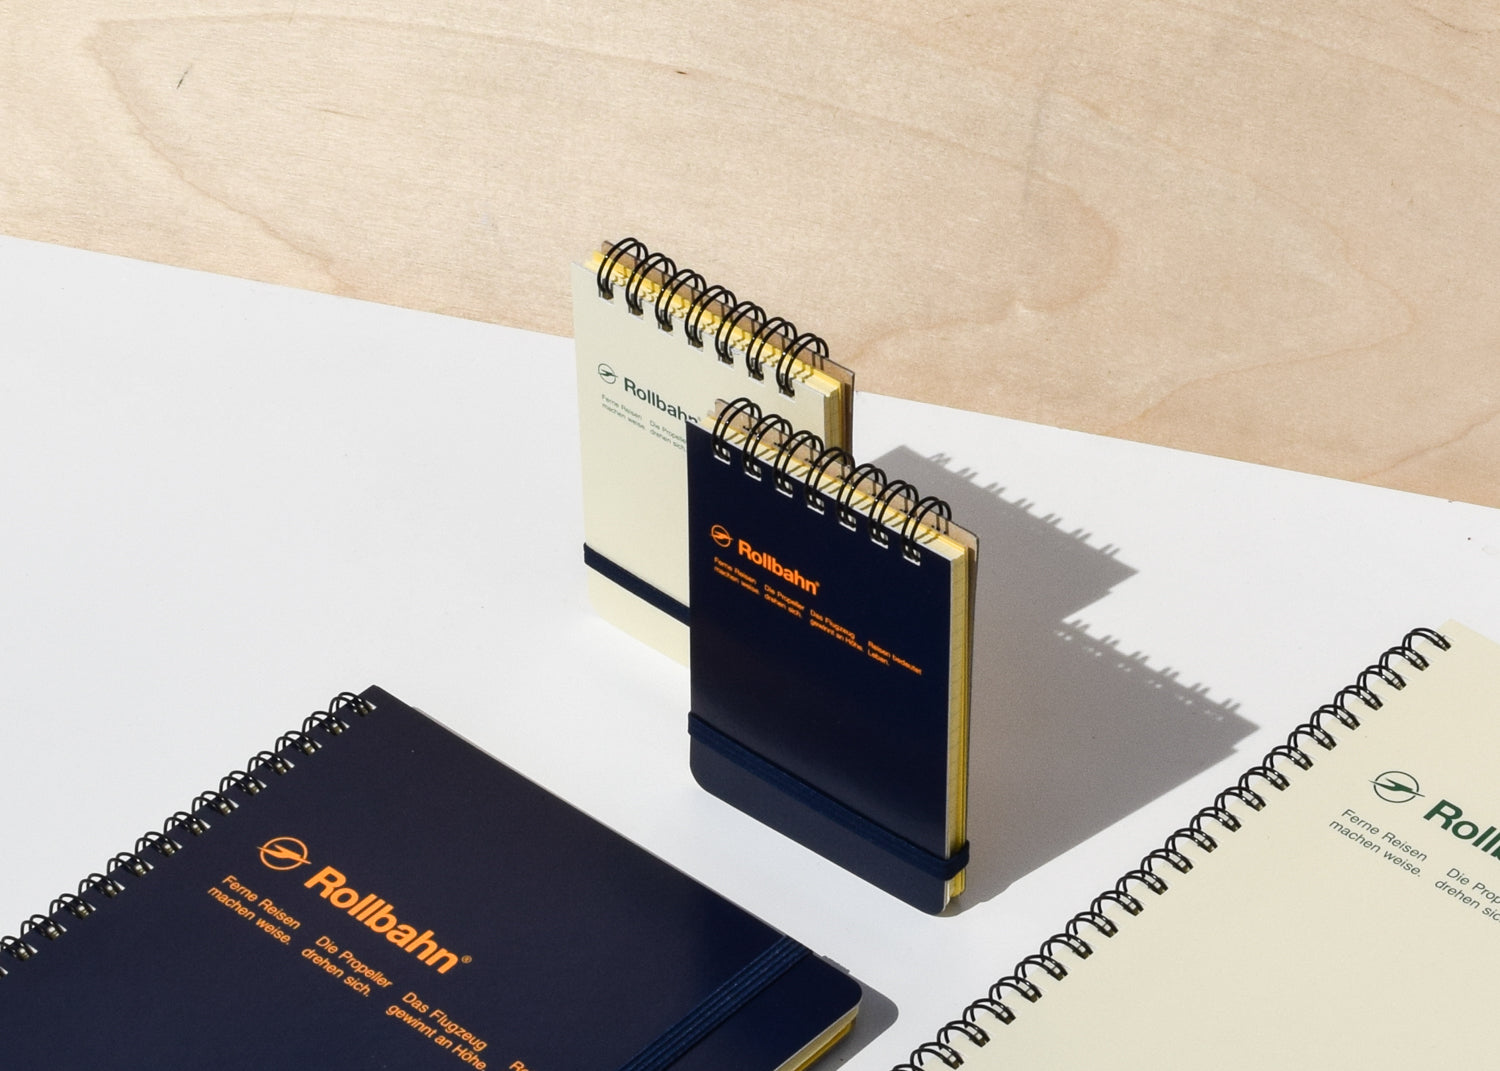 Good for jotting notes or making to-do lists, the Rollbahn Spiral Notebook Mini Flip Memo from Delfonics.